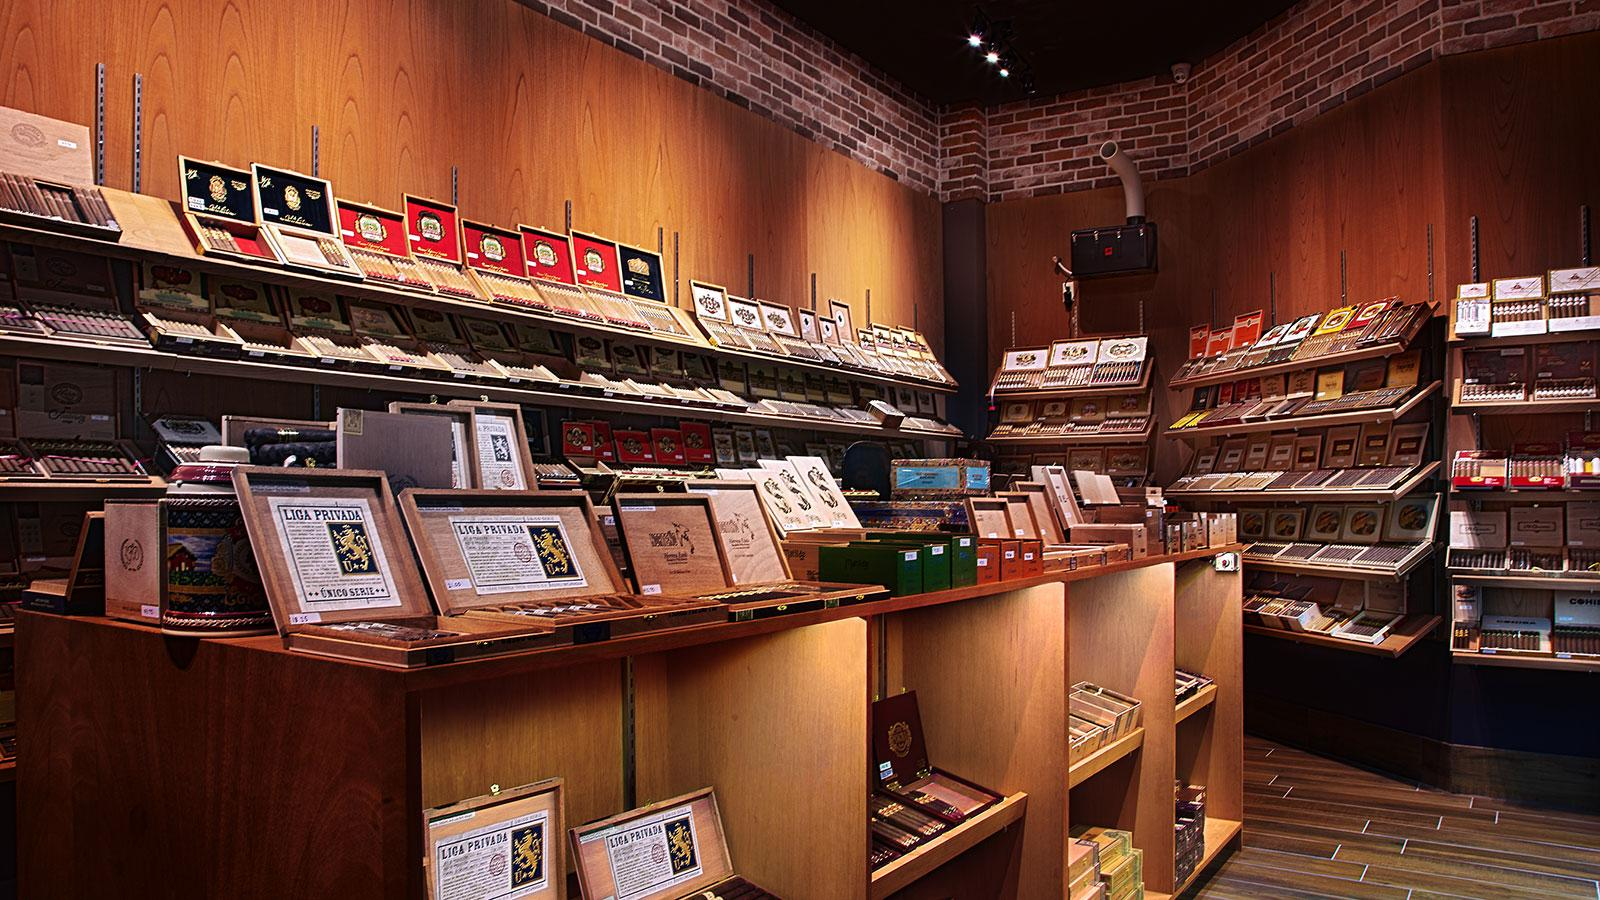 The cigar choices in a well-stocked retail humidor can be overwhelming. A little bit of knowledge about the blend and strength can go a long way.